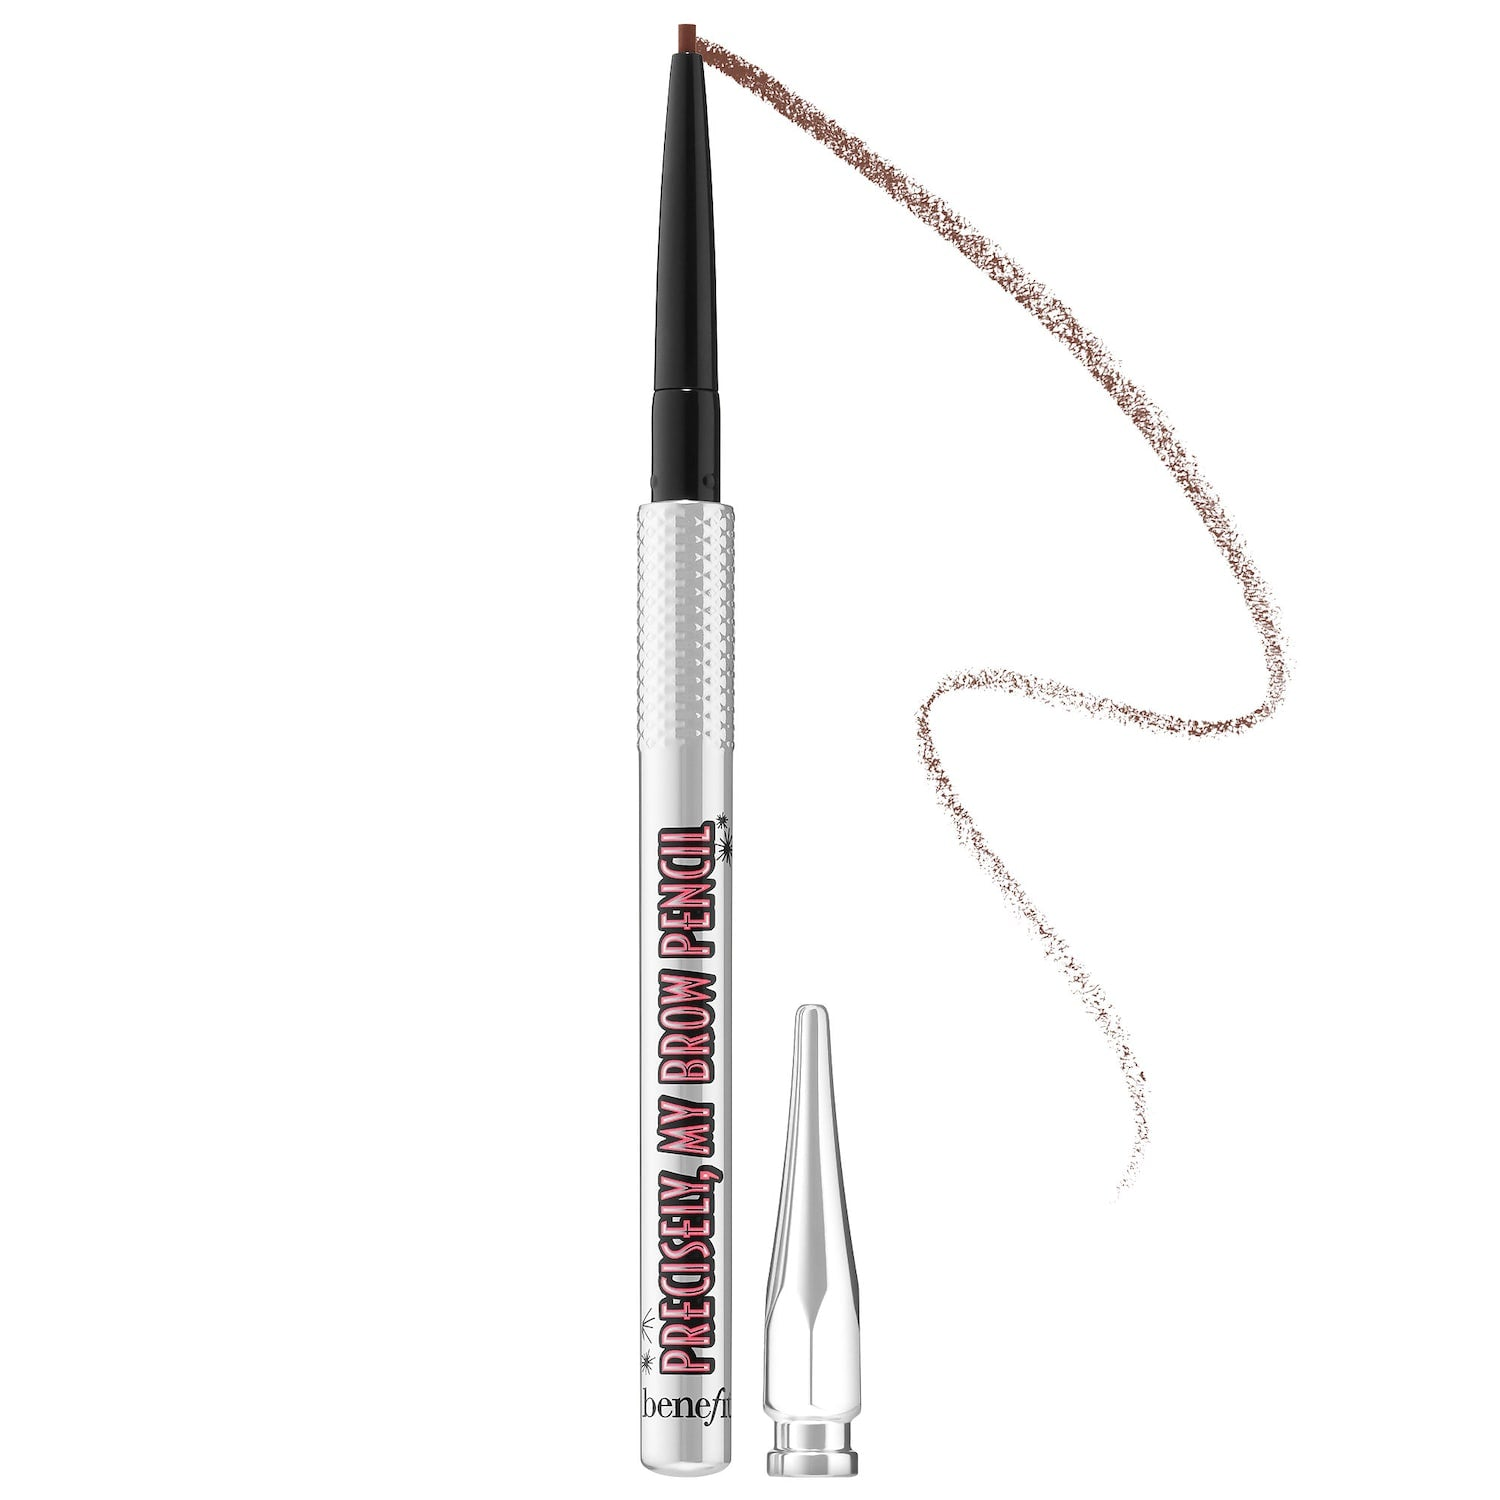 Benefit Cosmetics Precisely, My Brow Pencil Ultra Fine Shape & Define Mini - Shade 3 (Warm light brown) (Unboxed)